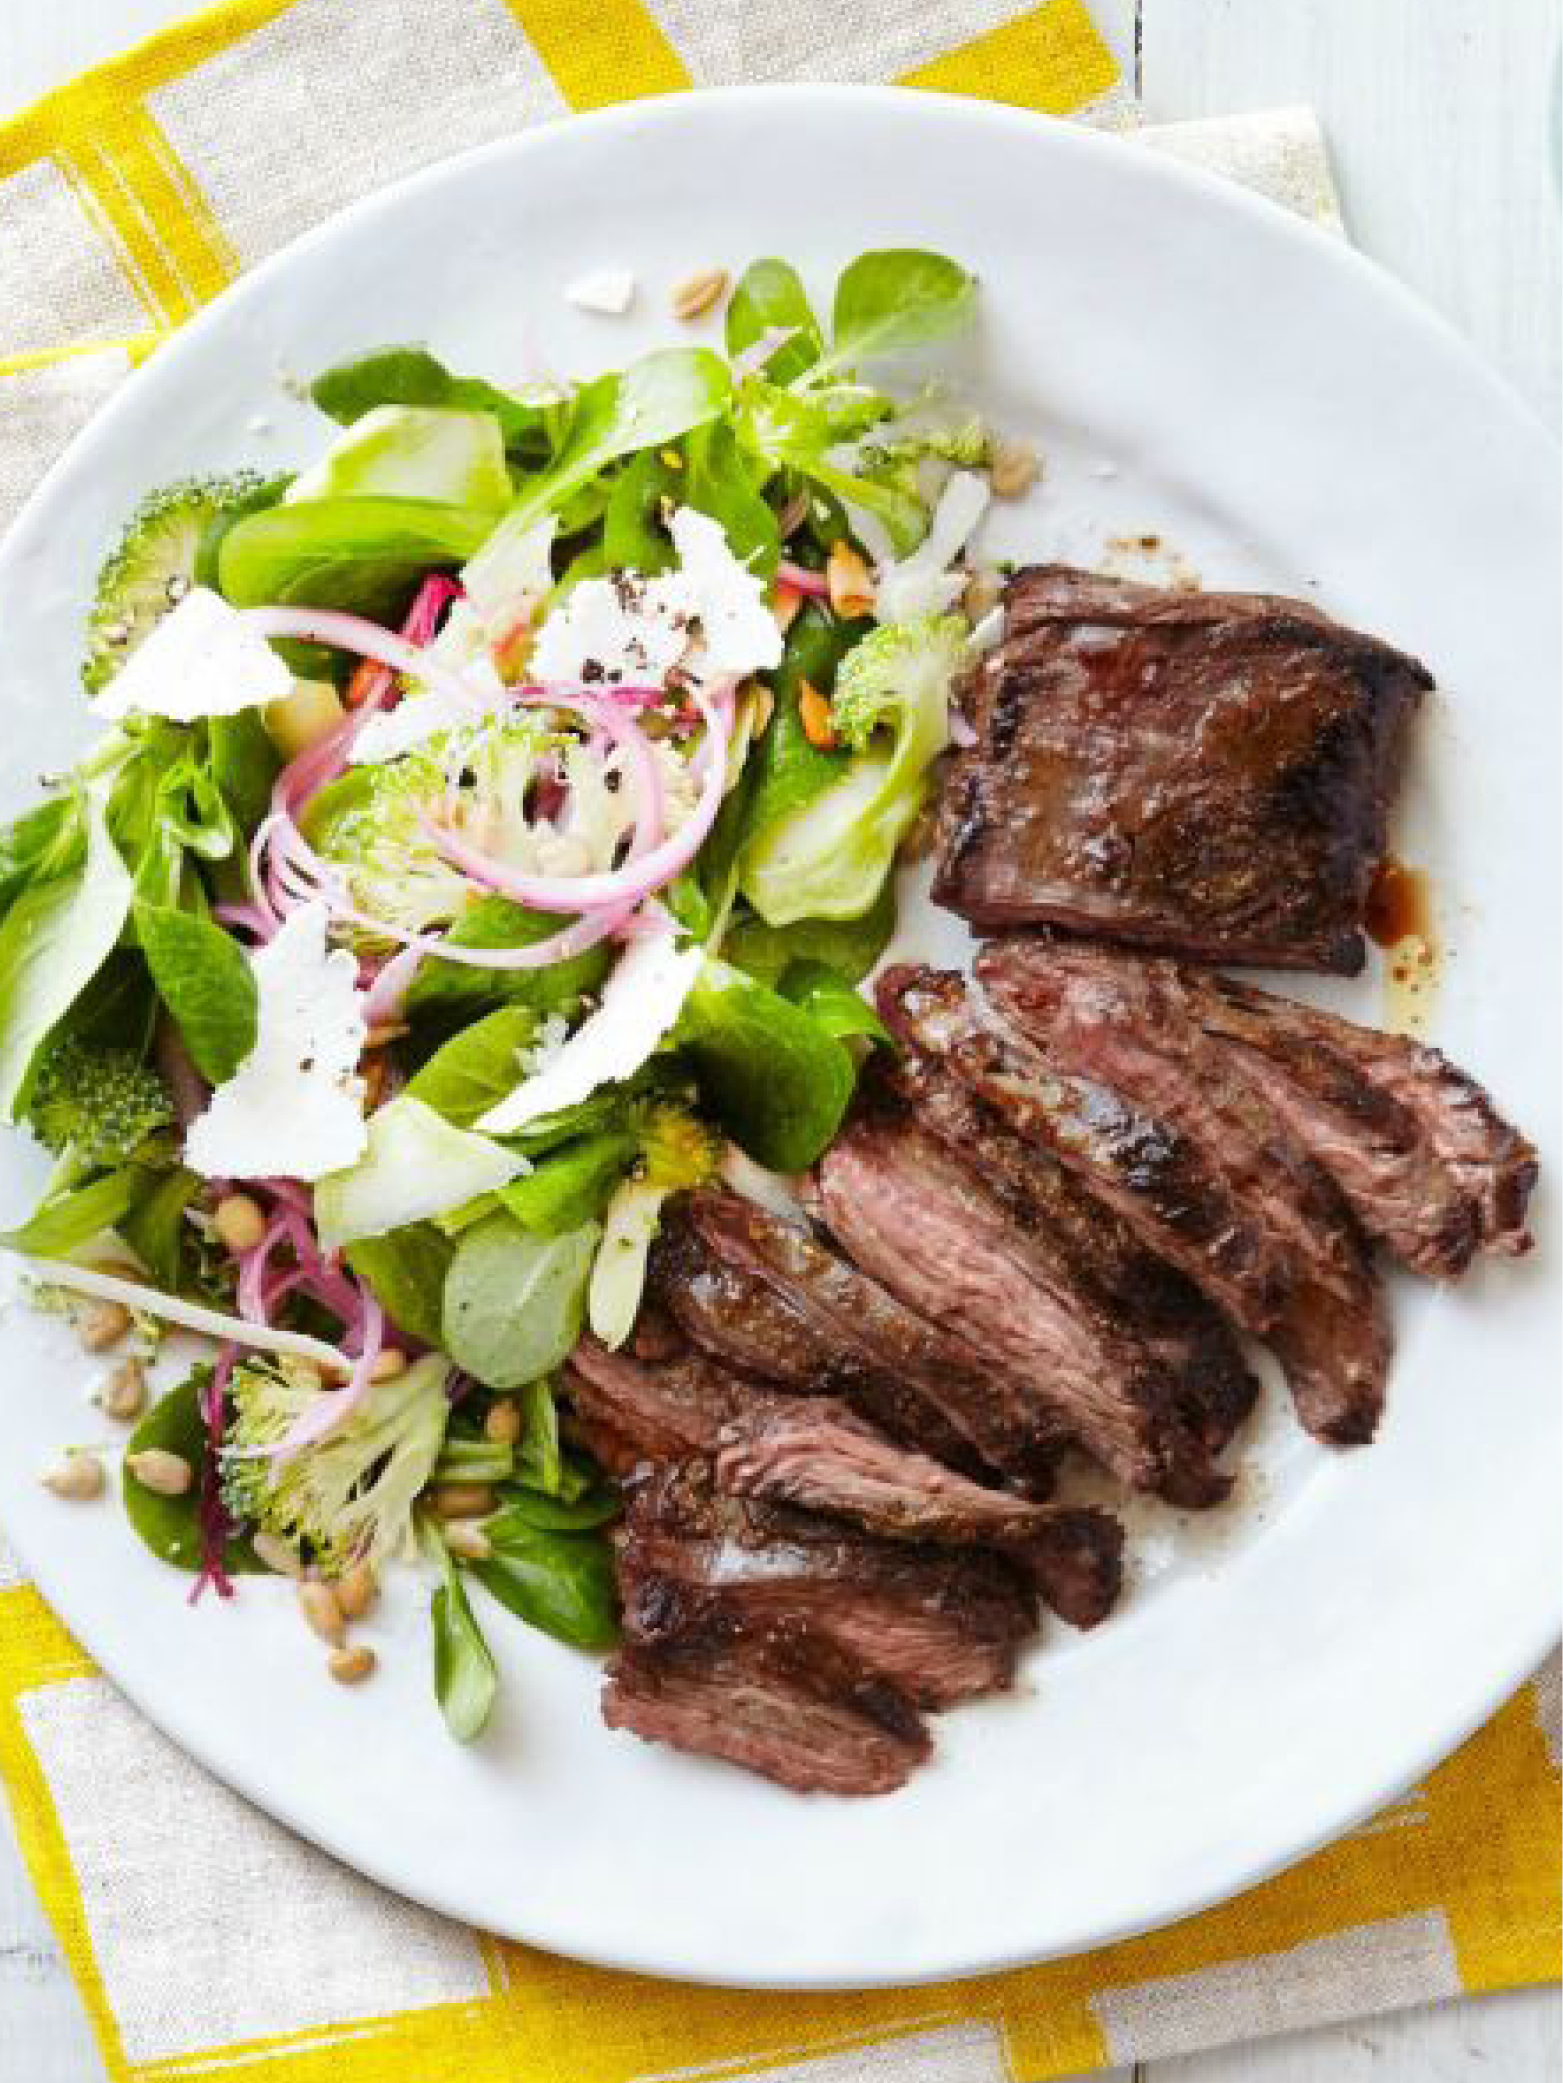 Spiced Skirt Steaks with Raw Broccoli and Mâche Salad  Country Living